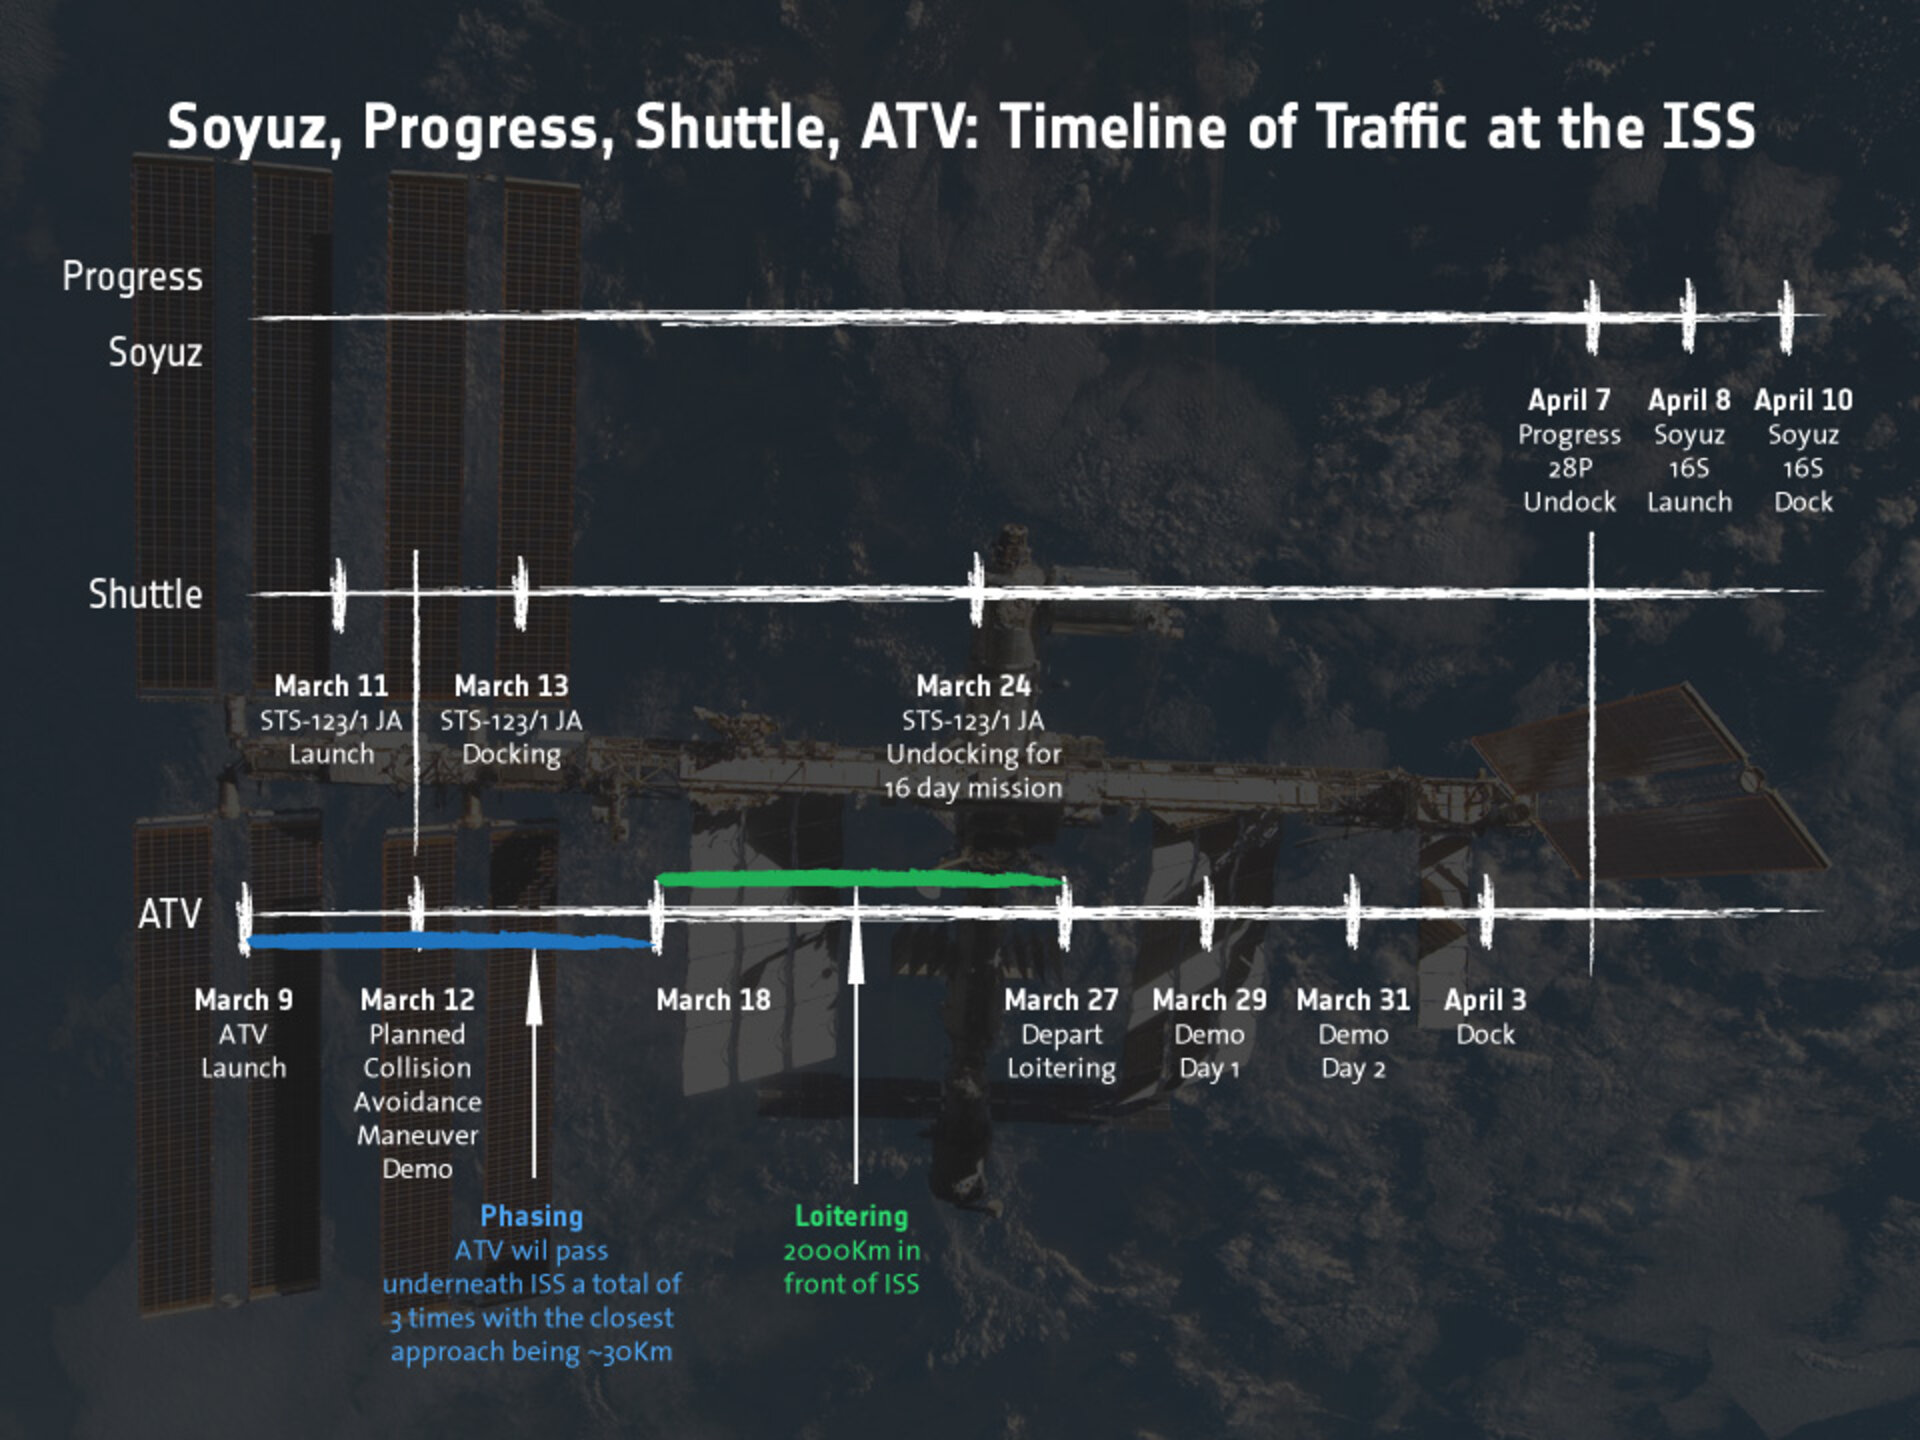 Traffic jam in space: timeline of vessels arriving at ISS (click for larger version)